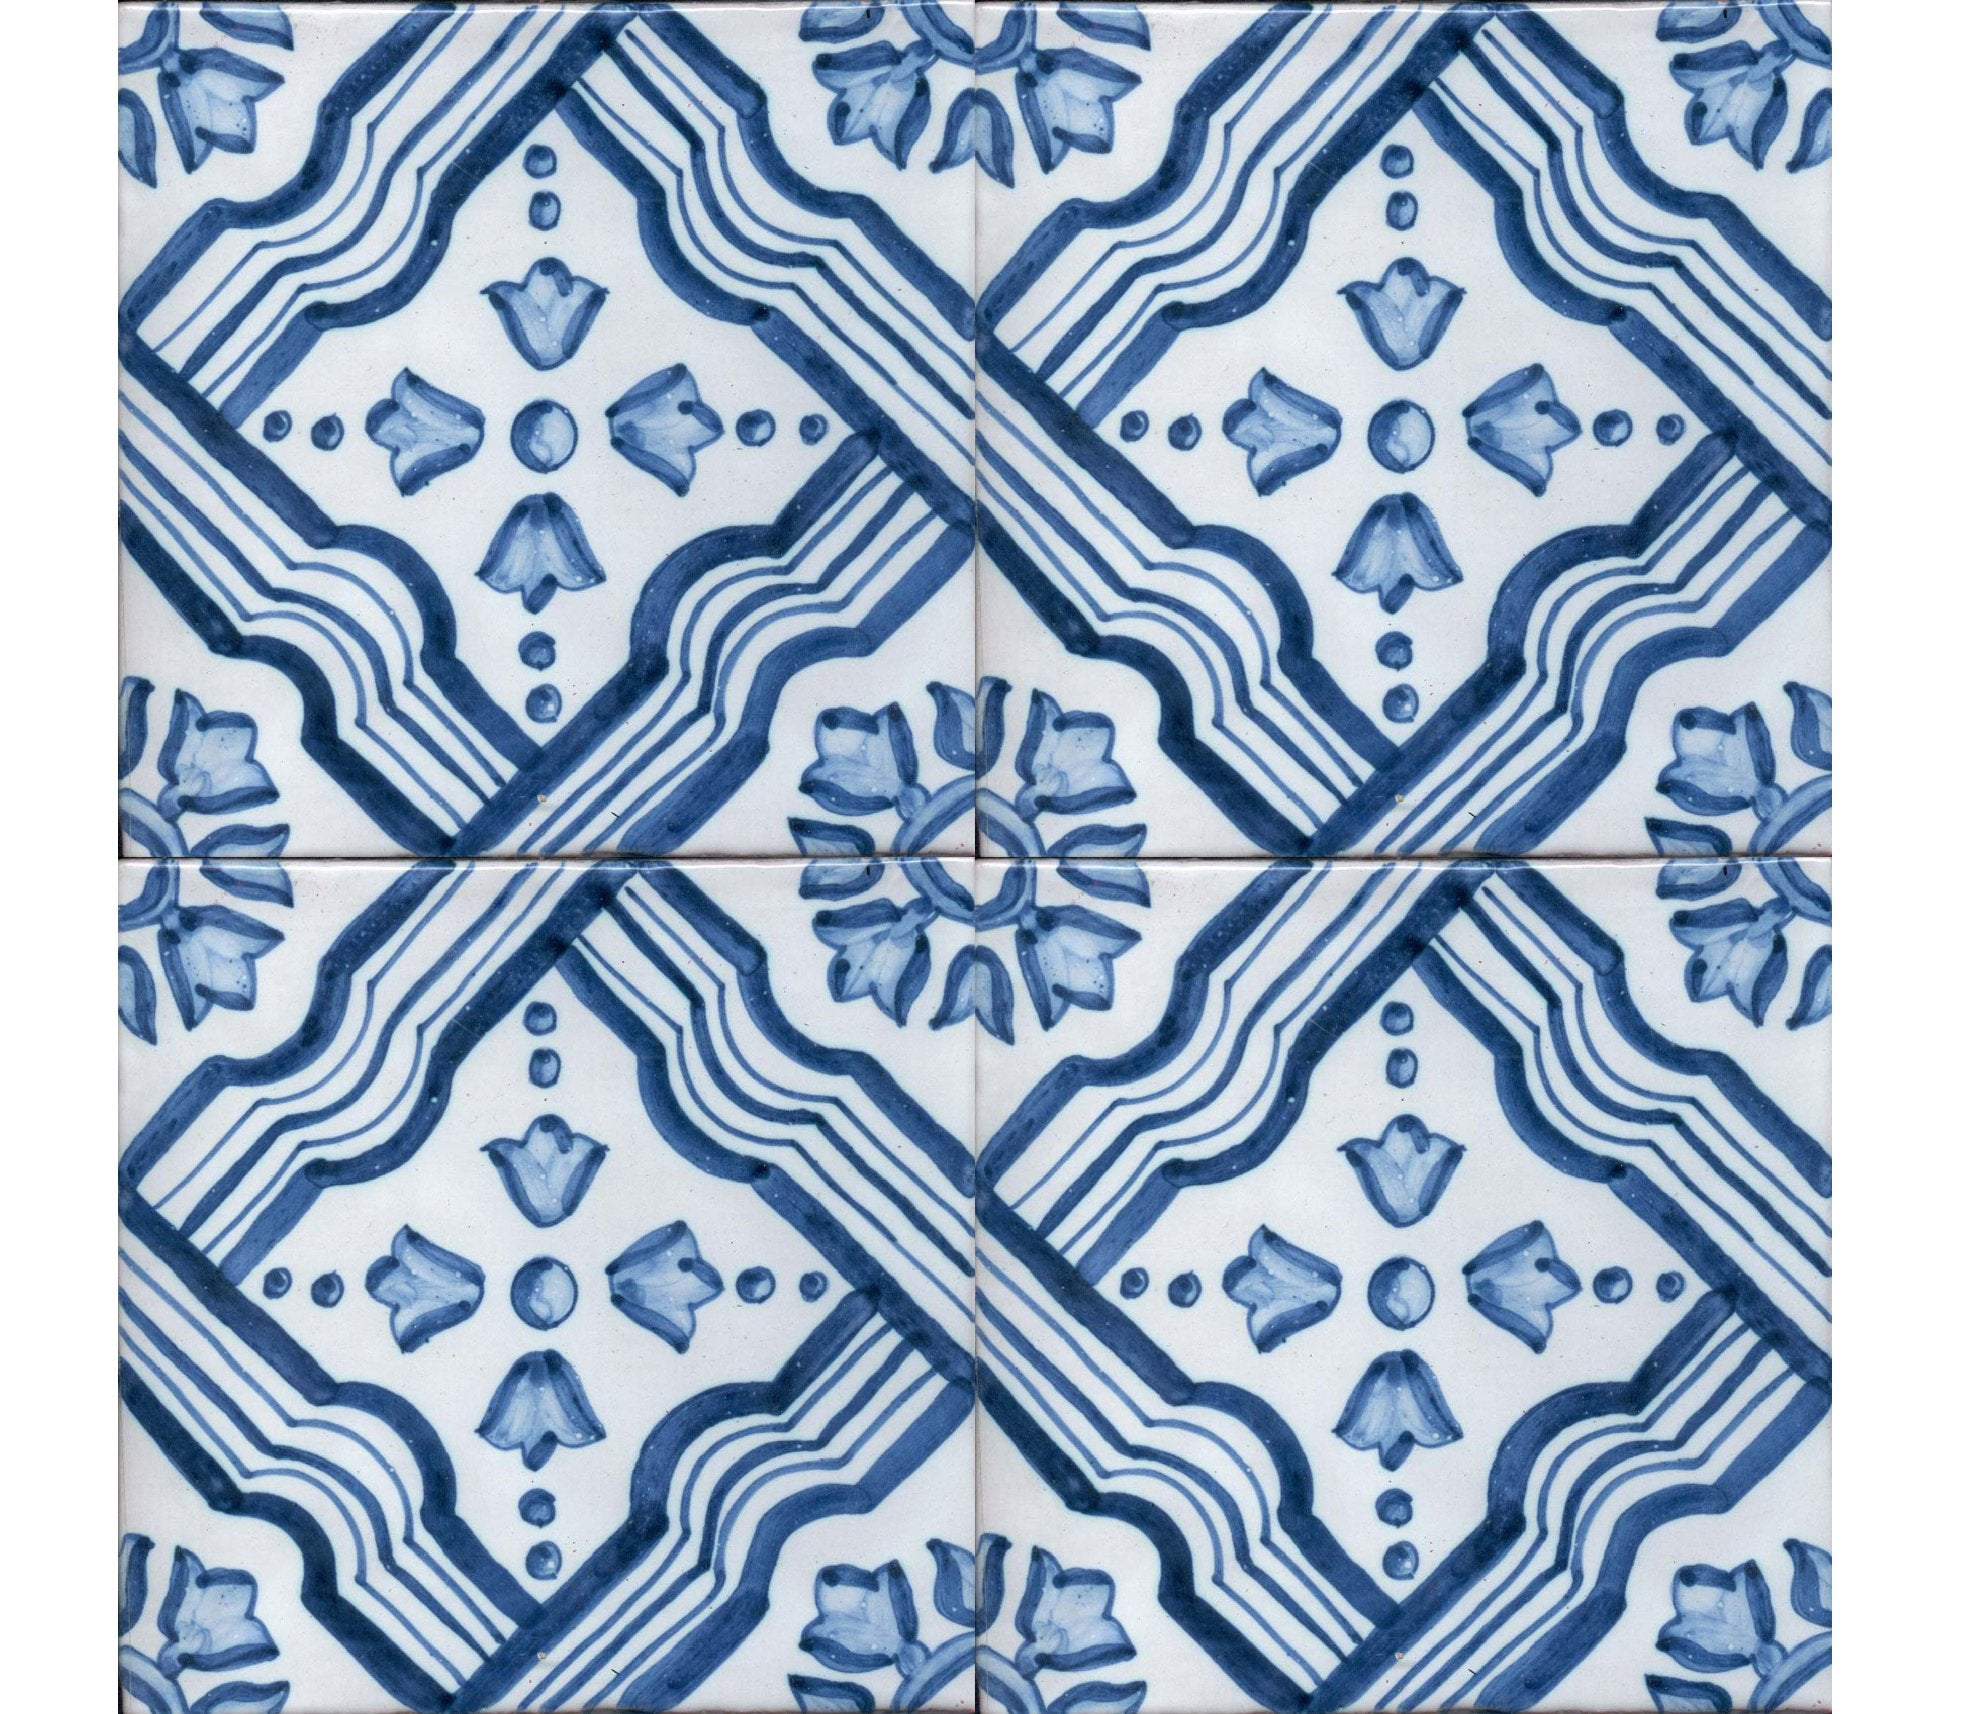 Series S Handpainted Tiles Product Image 45